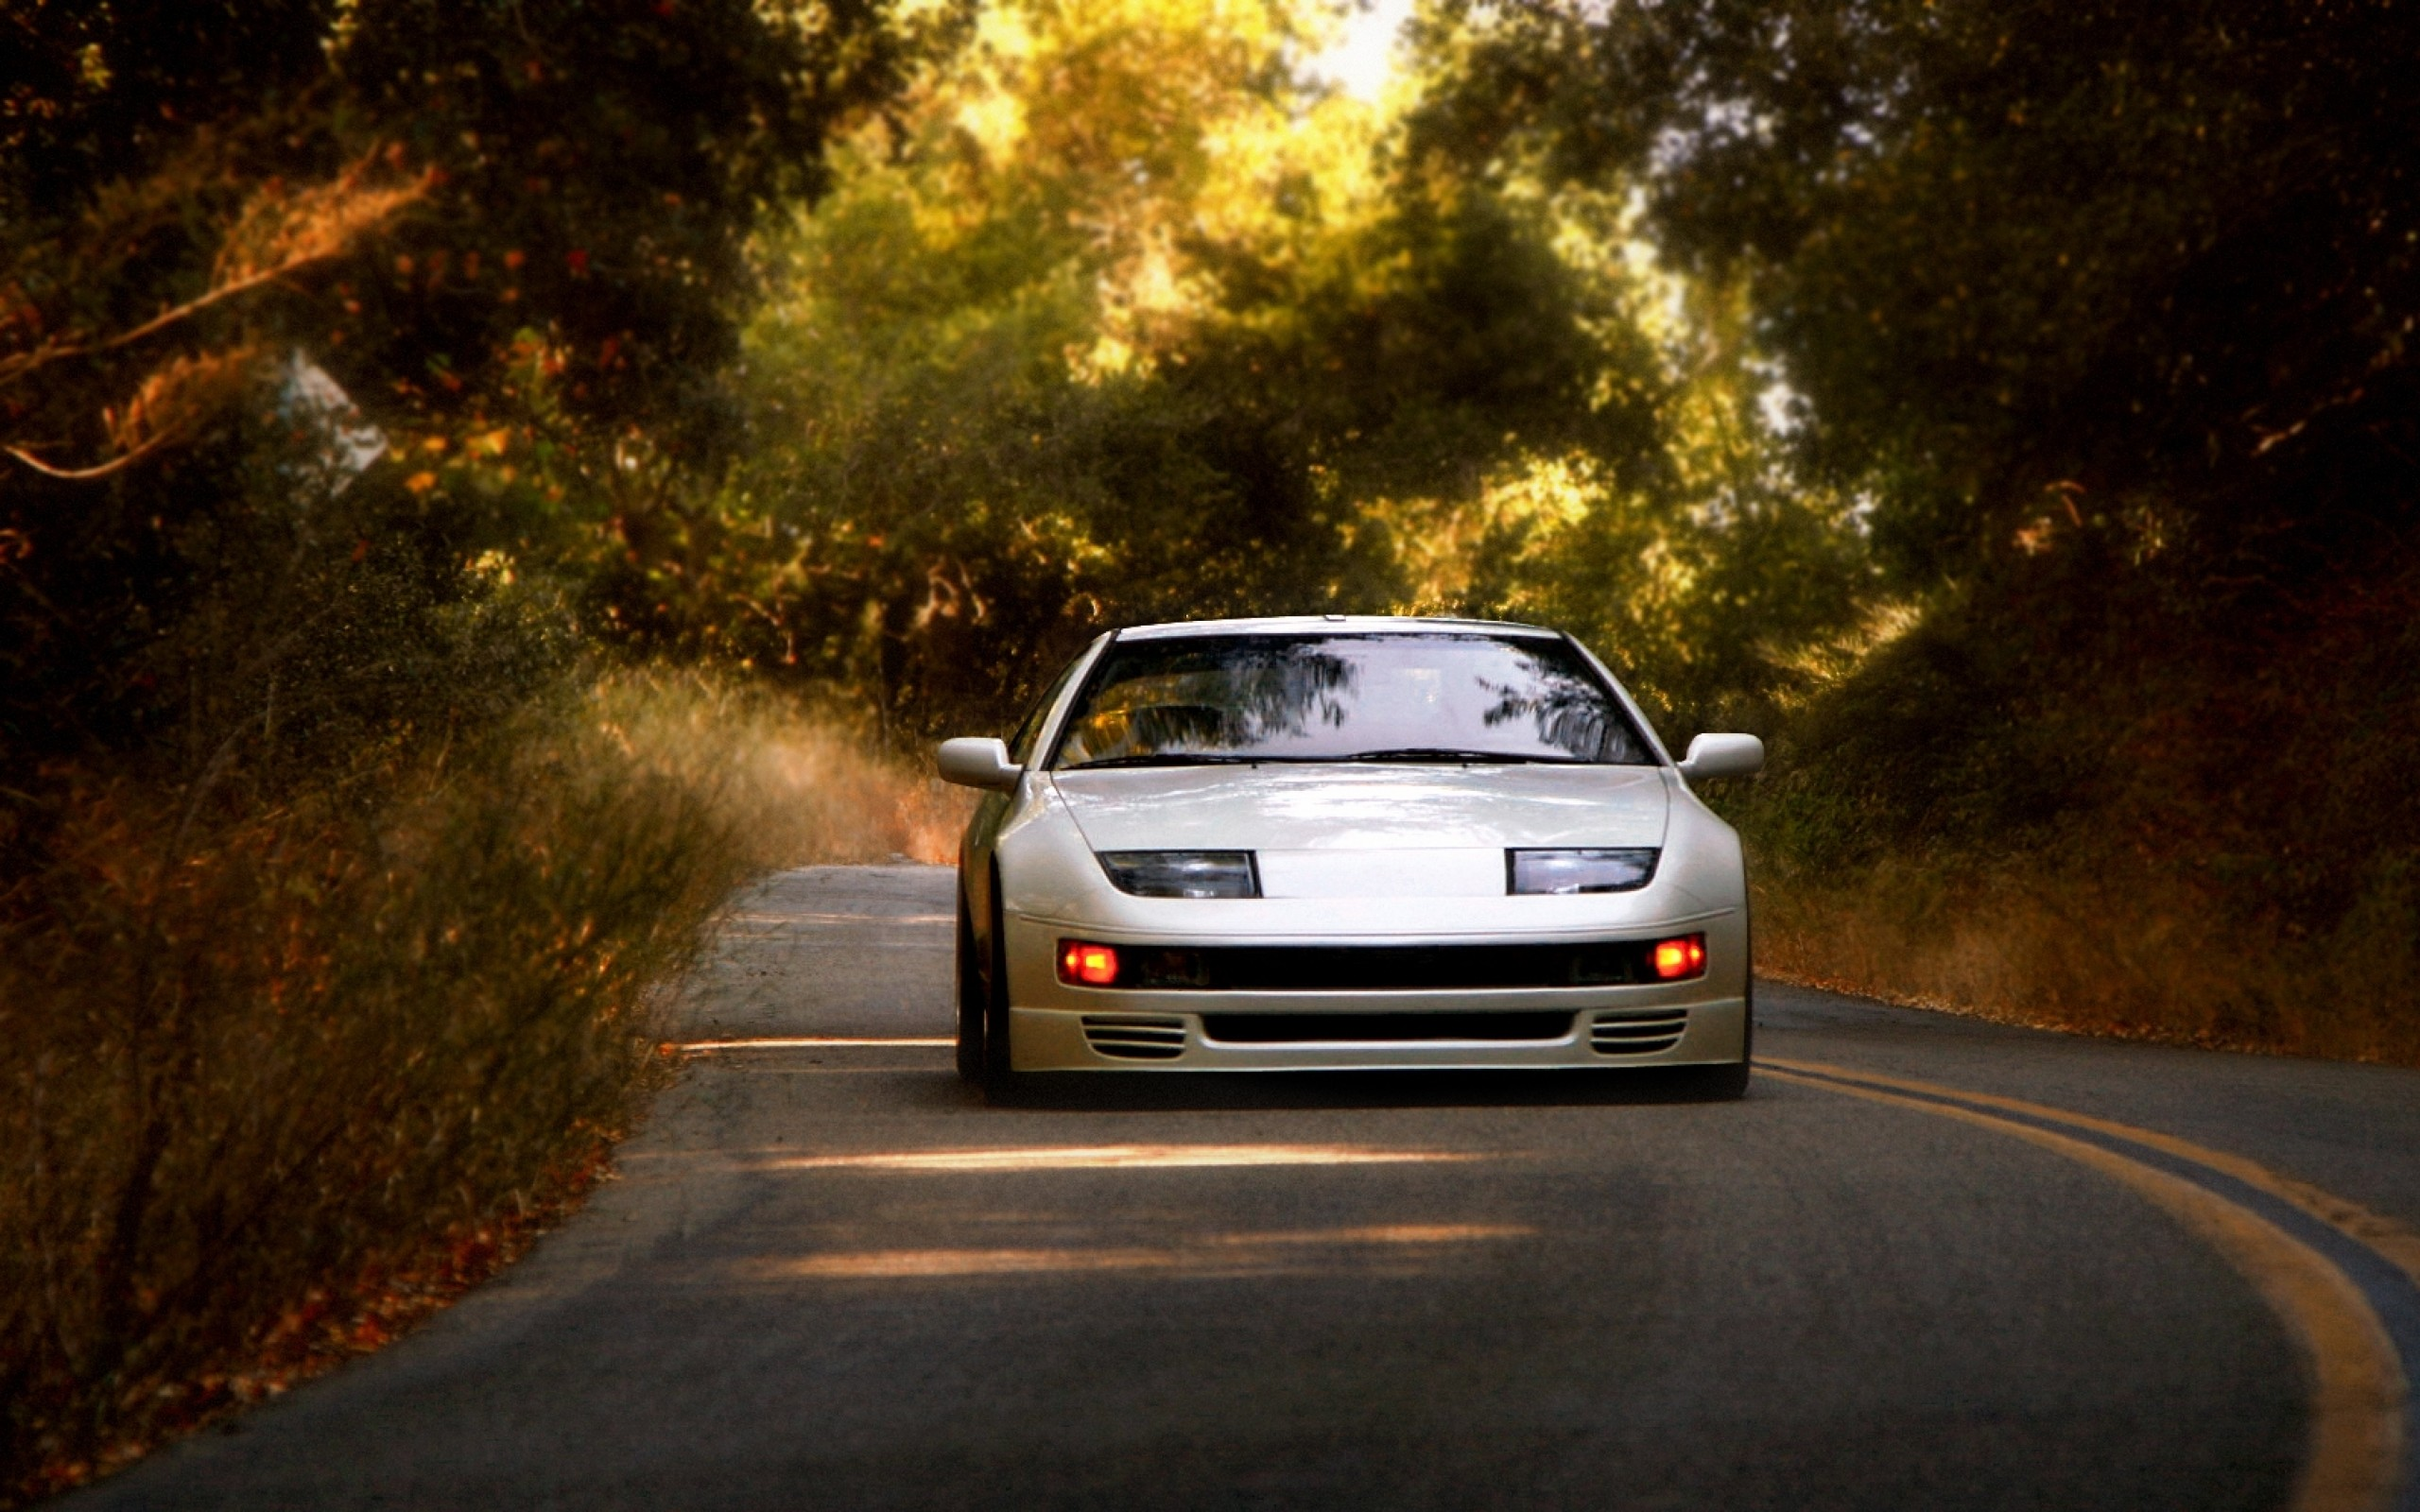 Nissan 300zx. Needs to be incorporated somewhere! | Cars | Pinterest |  Nissan 300zx, Nissan and Cars